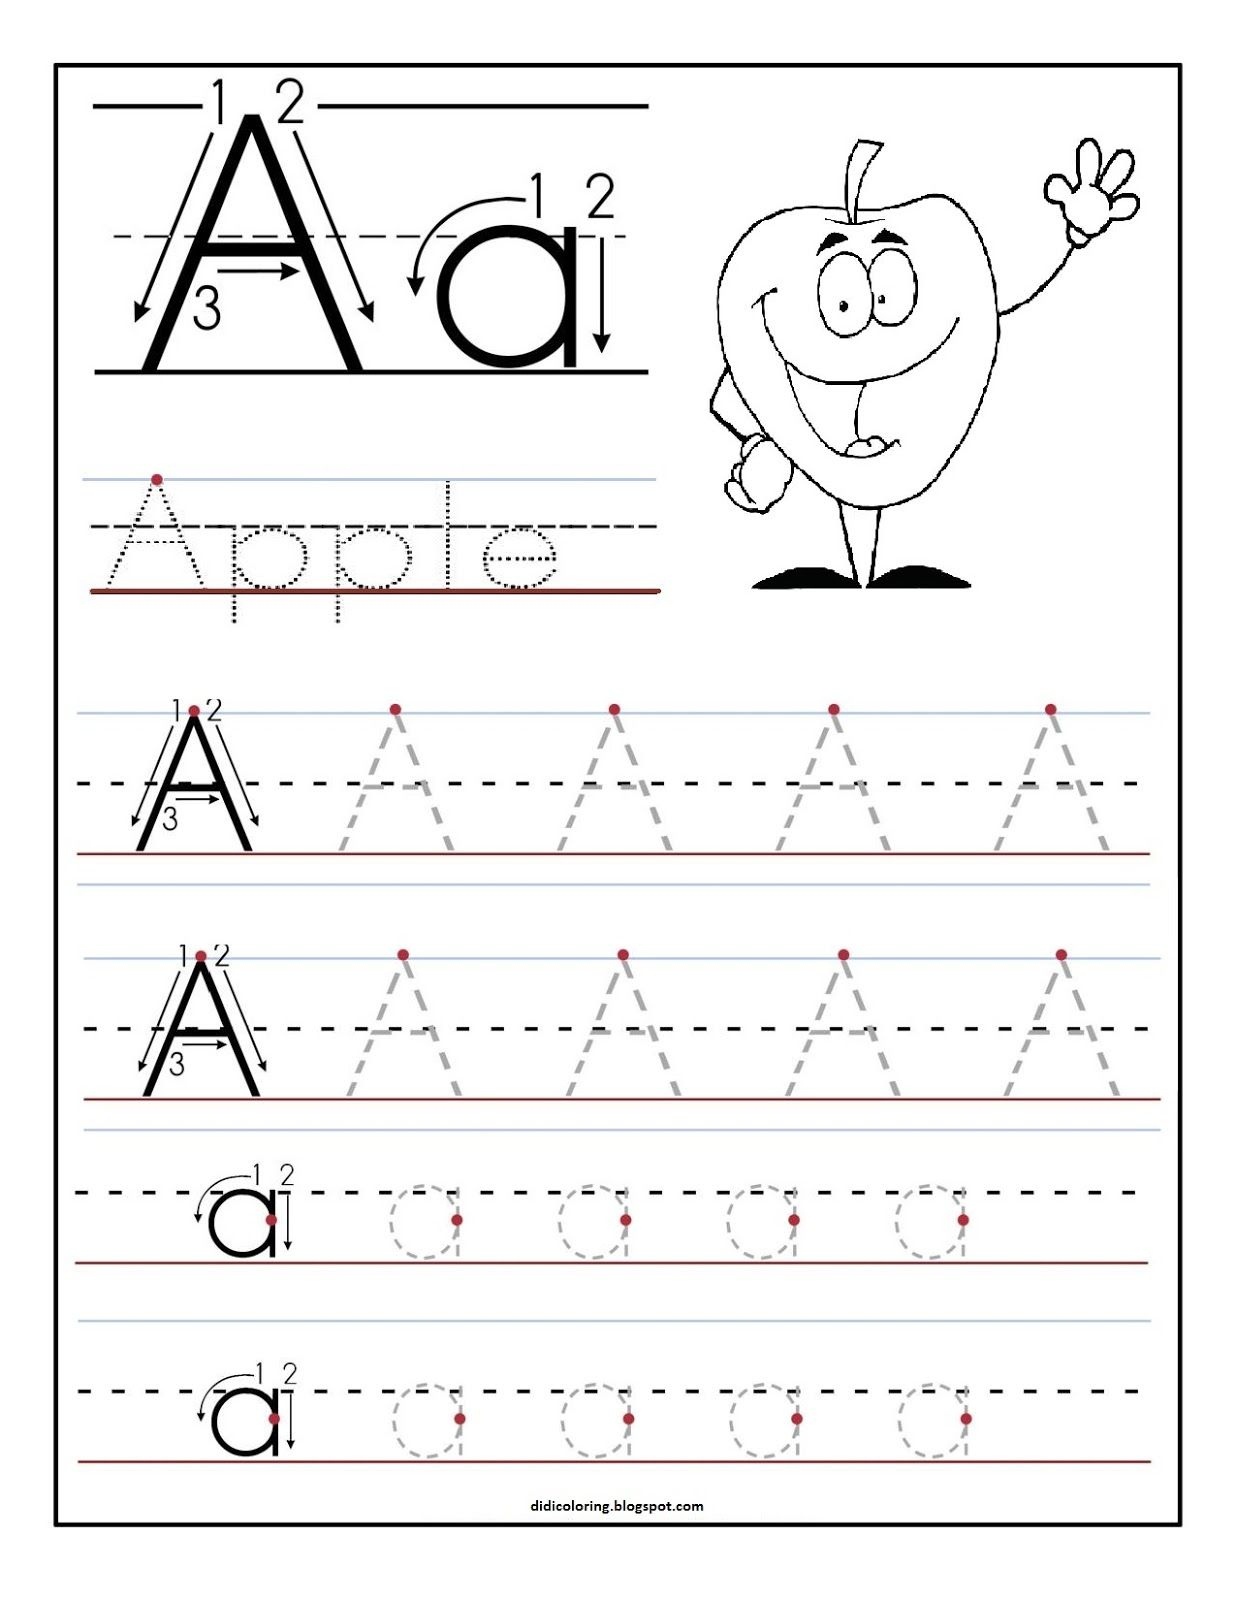 Free Preschool Writing Worksheets – With Also Addition Worksheet   Preschool Writing Worksheets Free Printable